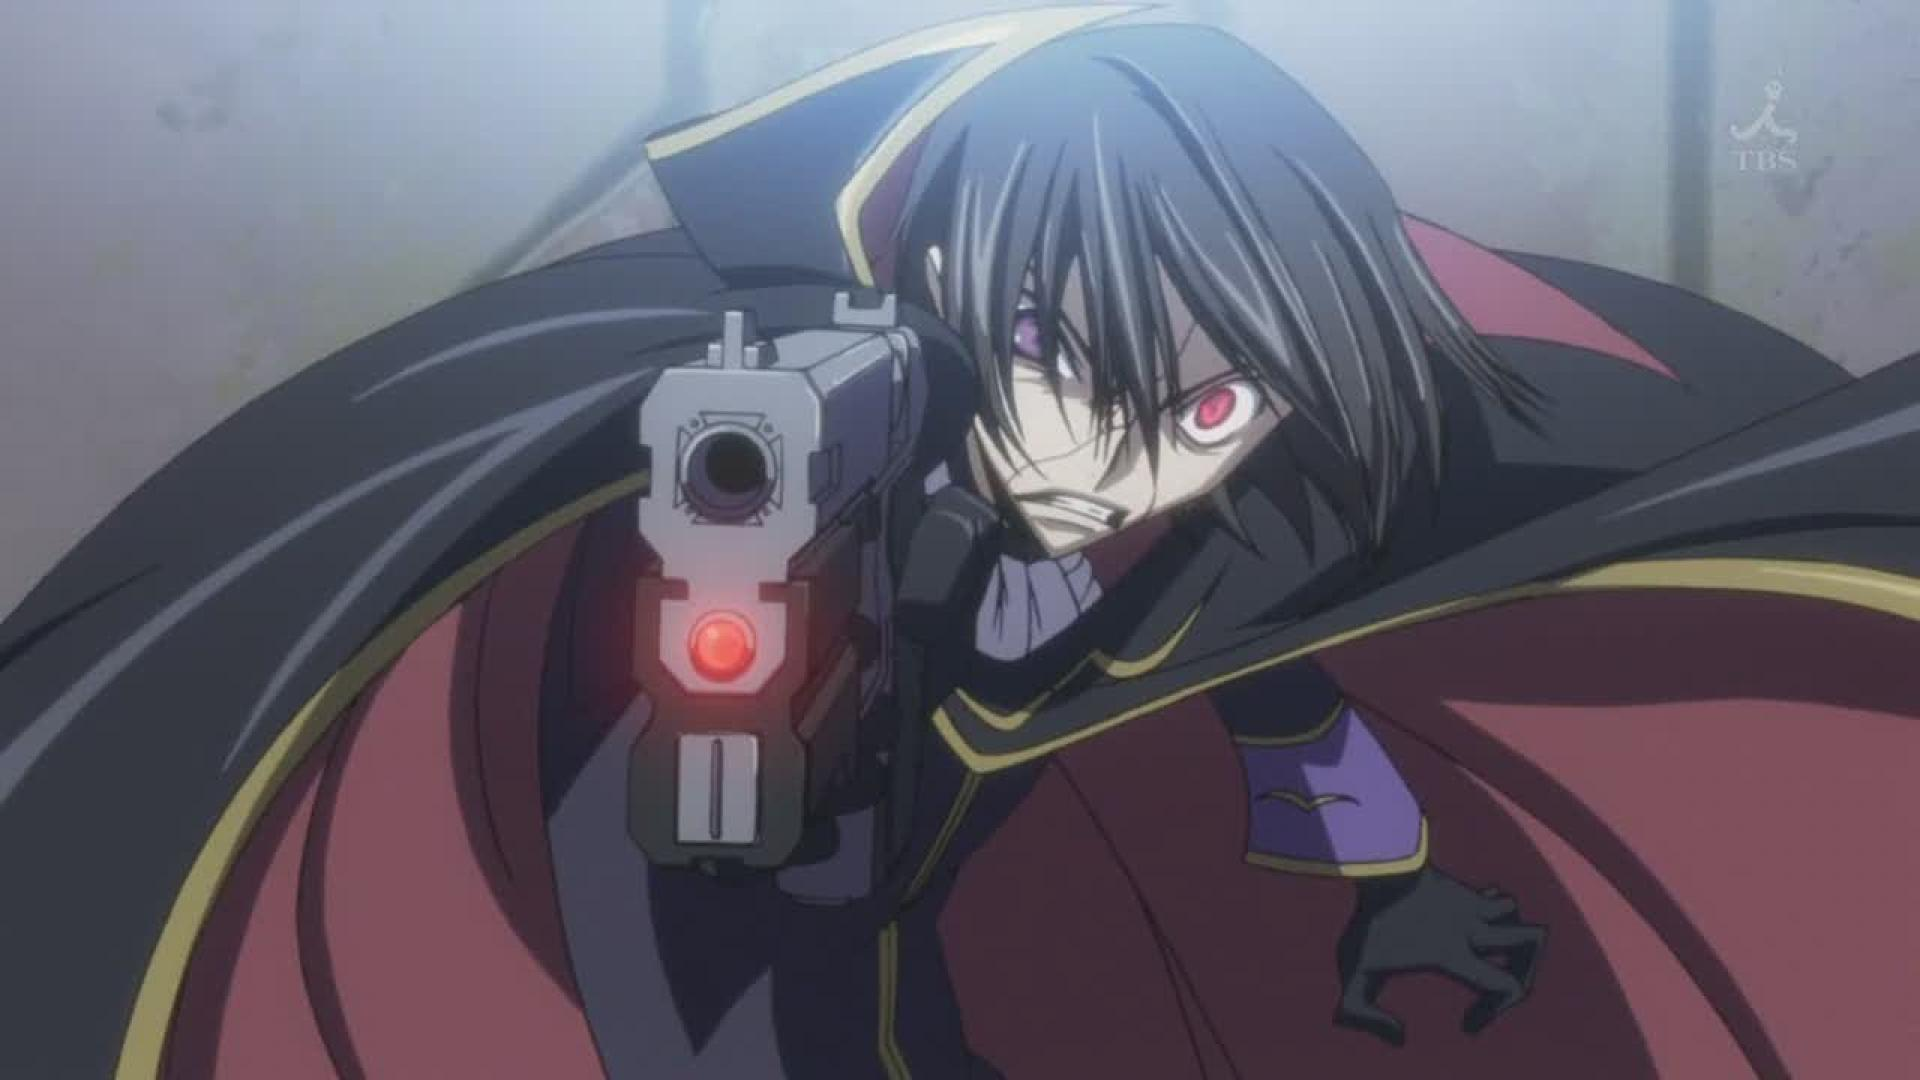 Code Geass Season 1 9 Free Hd Wallpaper